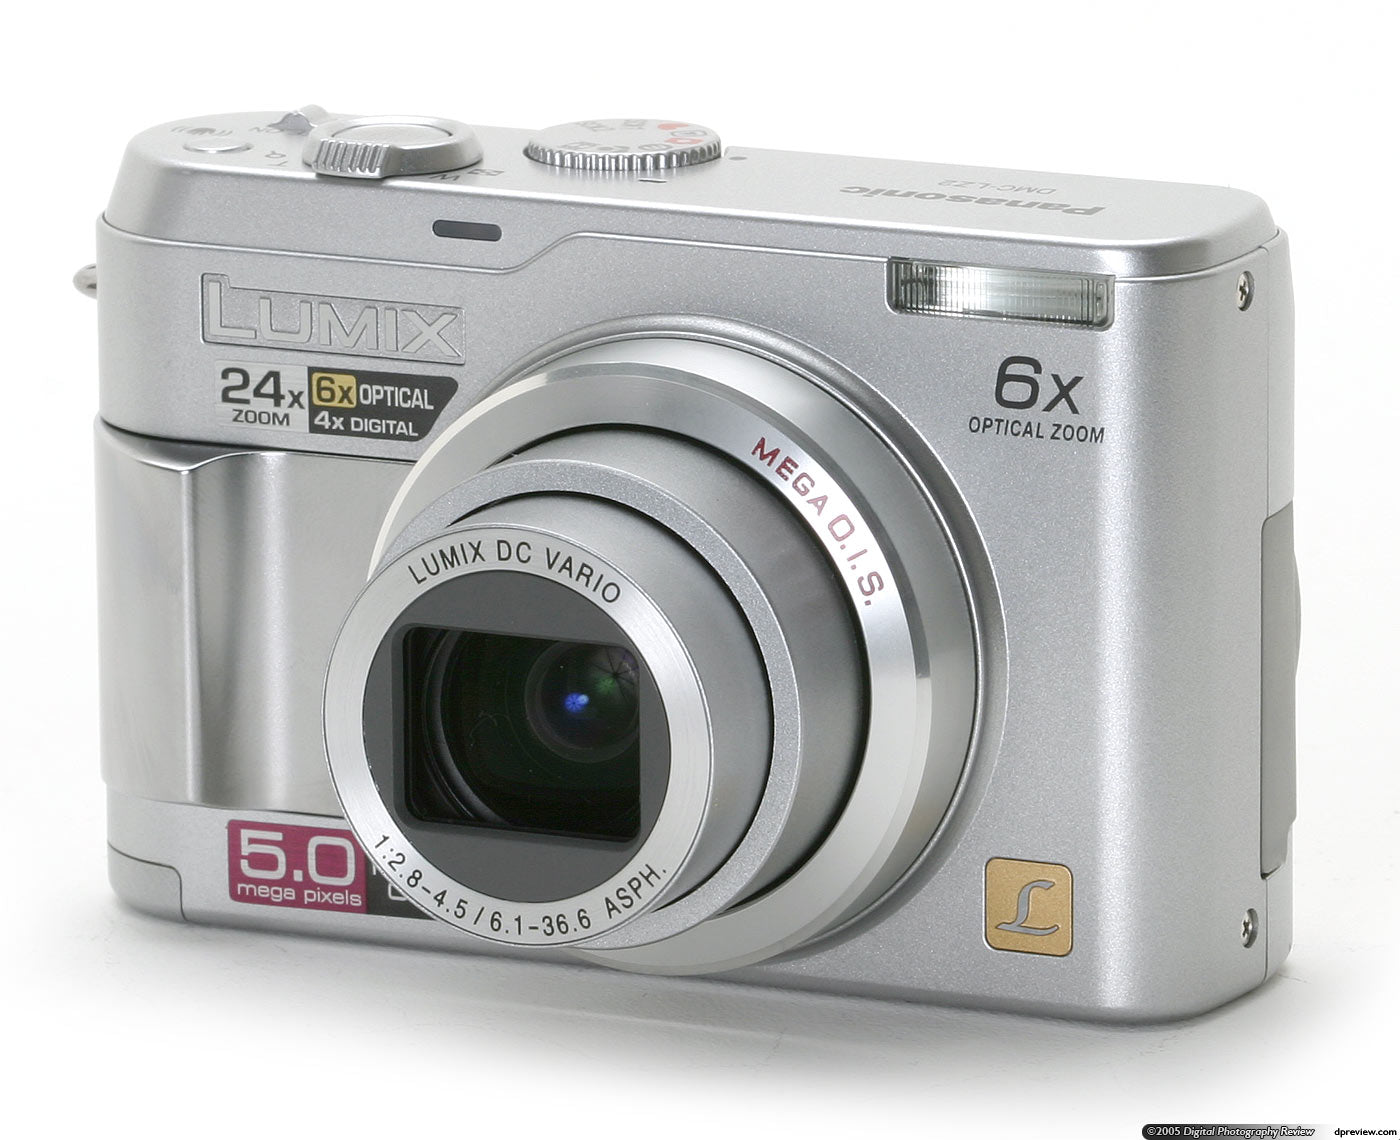 Panasonic Lumix Dmc-lz2 5.0MP Digital Camera - Silver